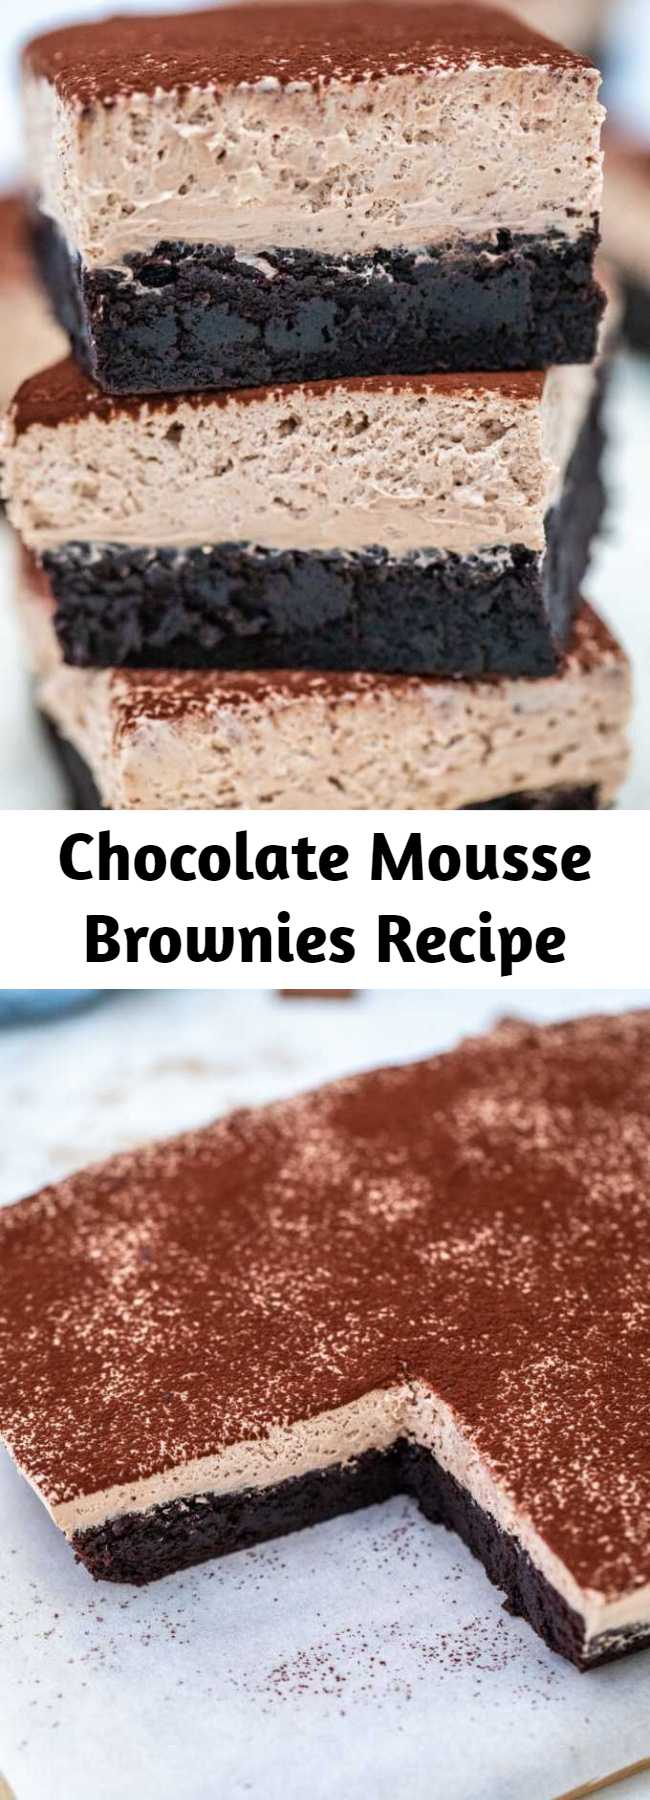 Chocolate Mousse Brownies Recipe - Chocolate Mousse Brownies are creamy, indulgent and loaded with chocolate, making them the perfect dessert. #brownies #chocolaterecipes #chocolate